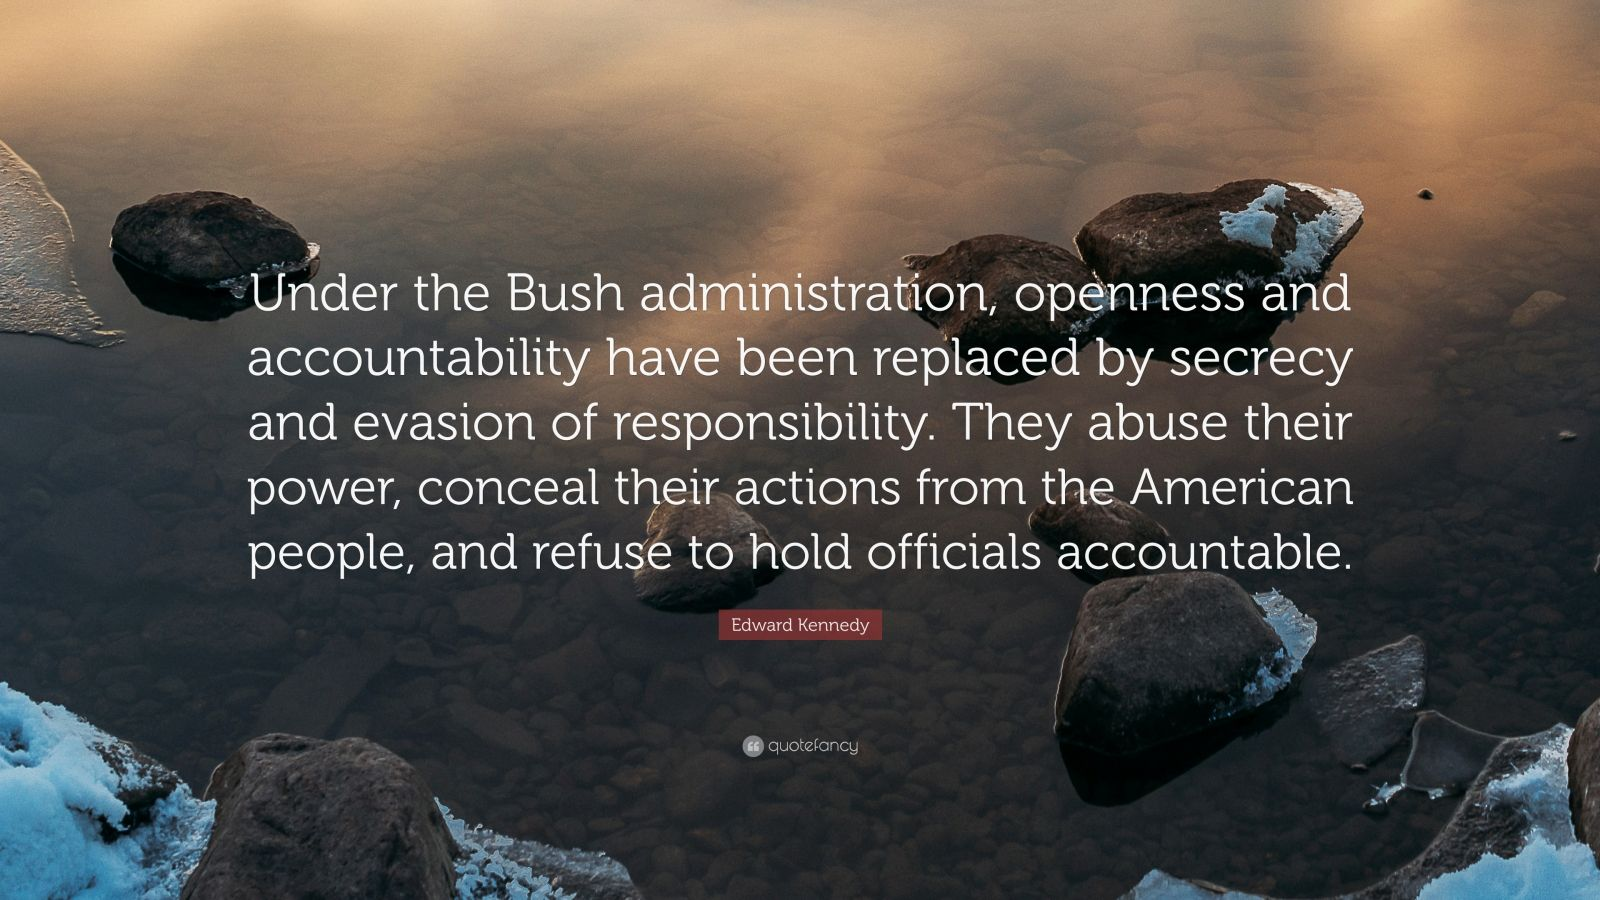 "Edward Kennedy Quote: ""Under the Bush administration, openness and accountability have been replaced by secrecy and evasion of responsibility. They abuse their power, conceal their actions from the American people, and refuse to hold officials accountable."""